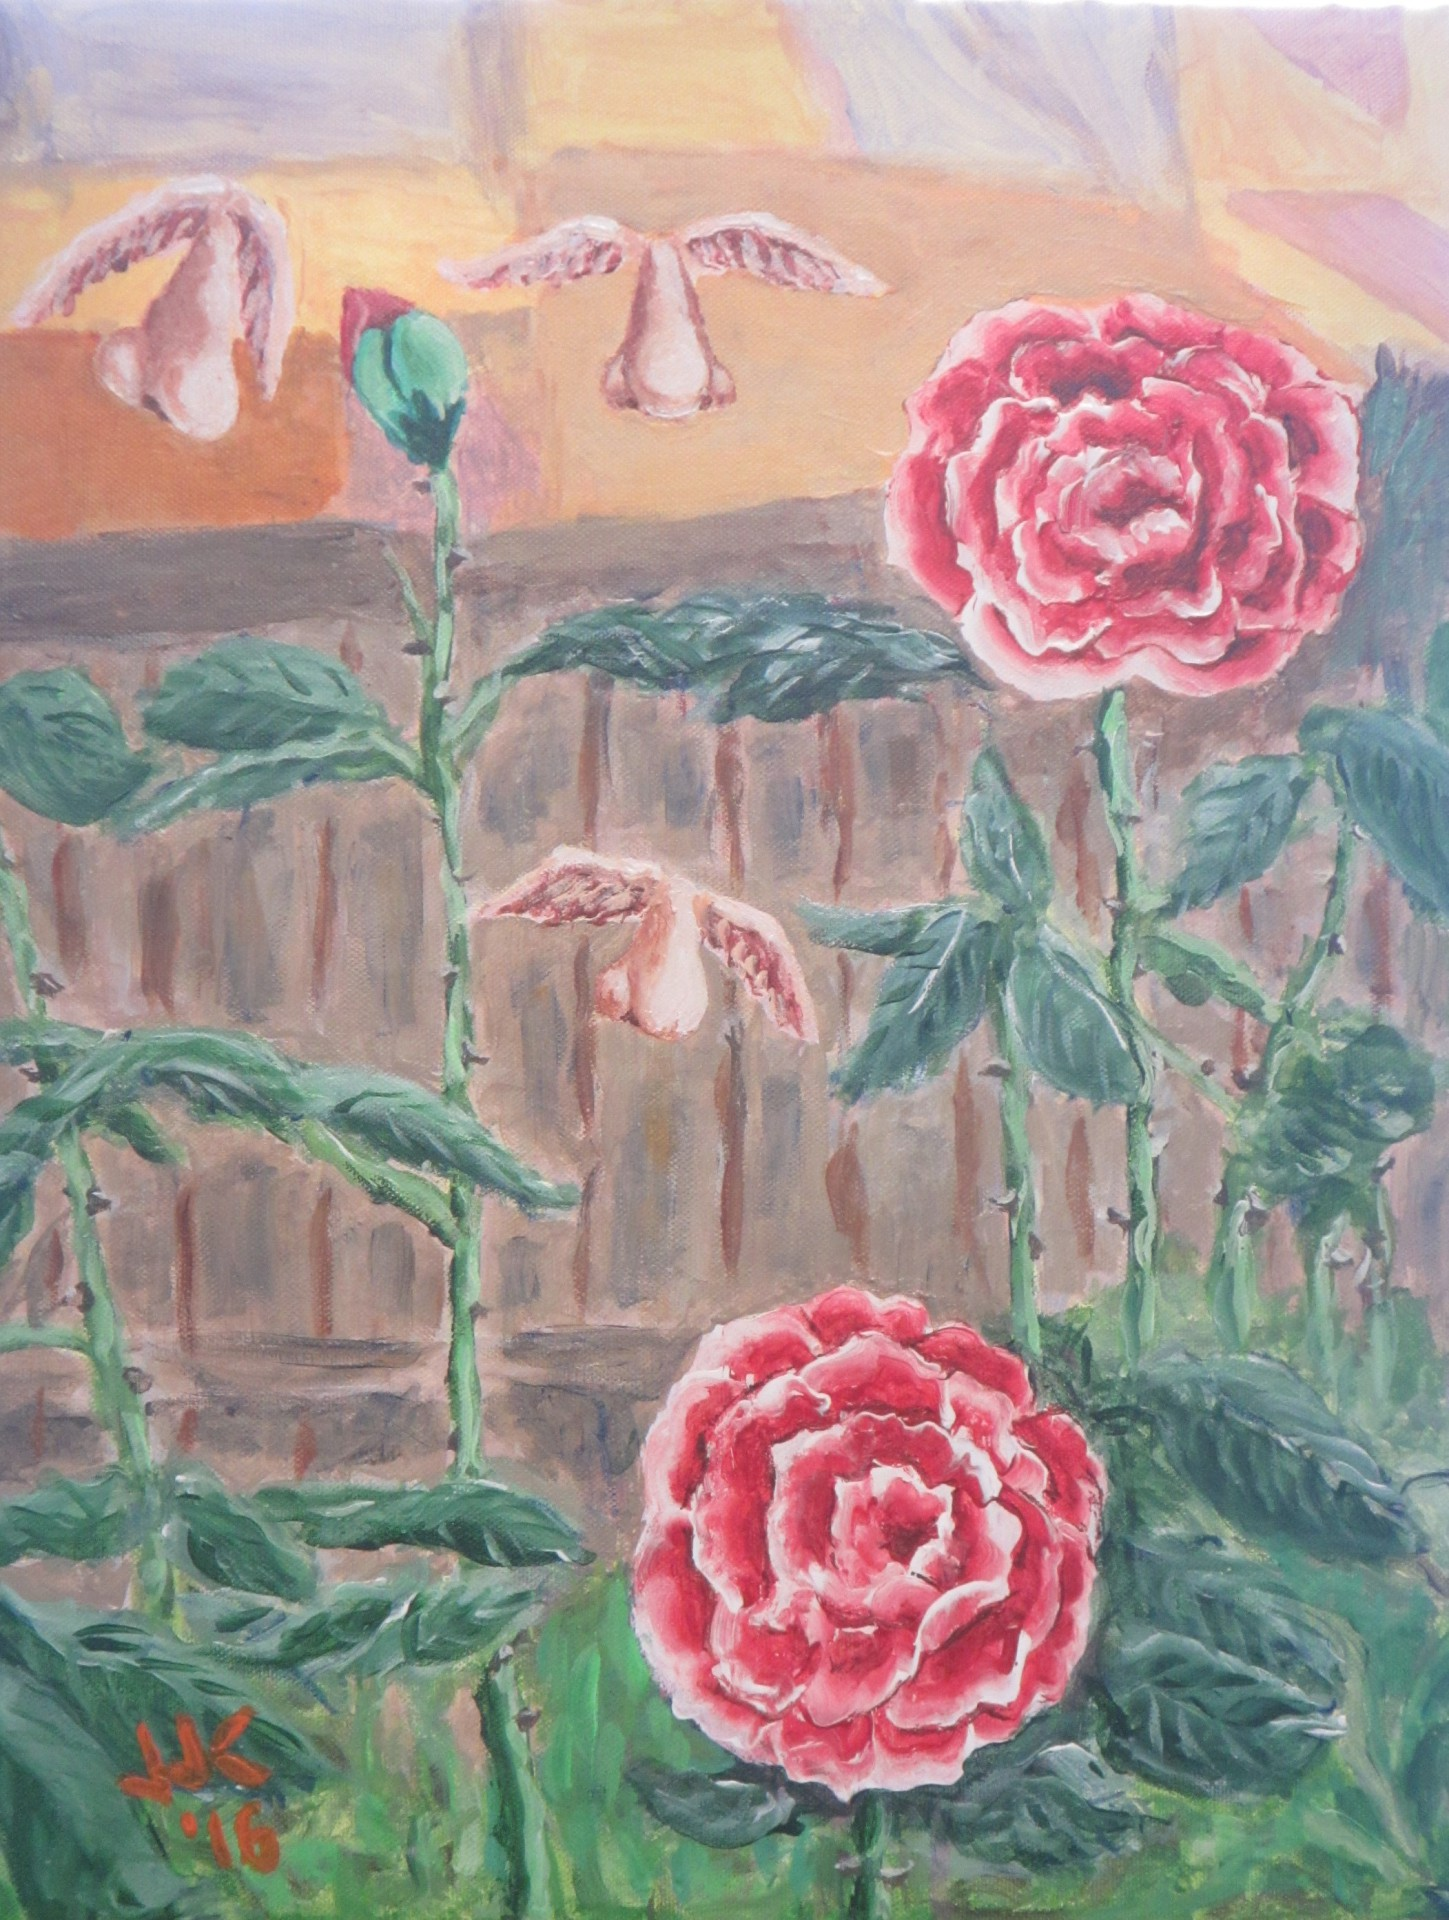 Acrylic on canvas surrealistic painting of red roses in a garden and flying noses coming in for a smell.